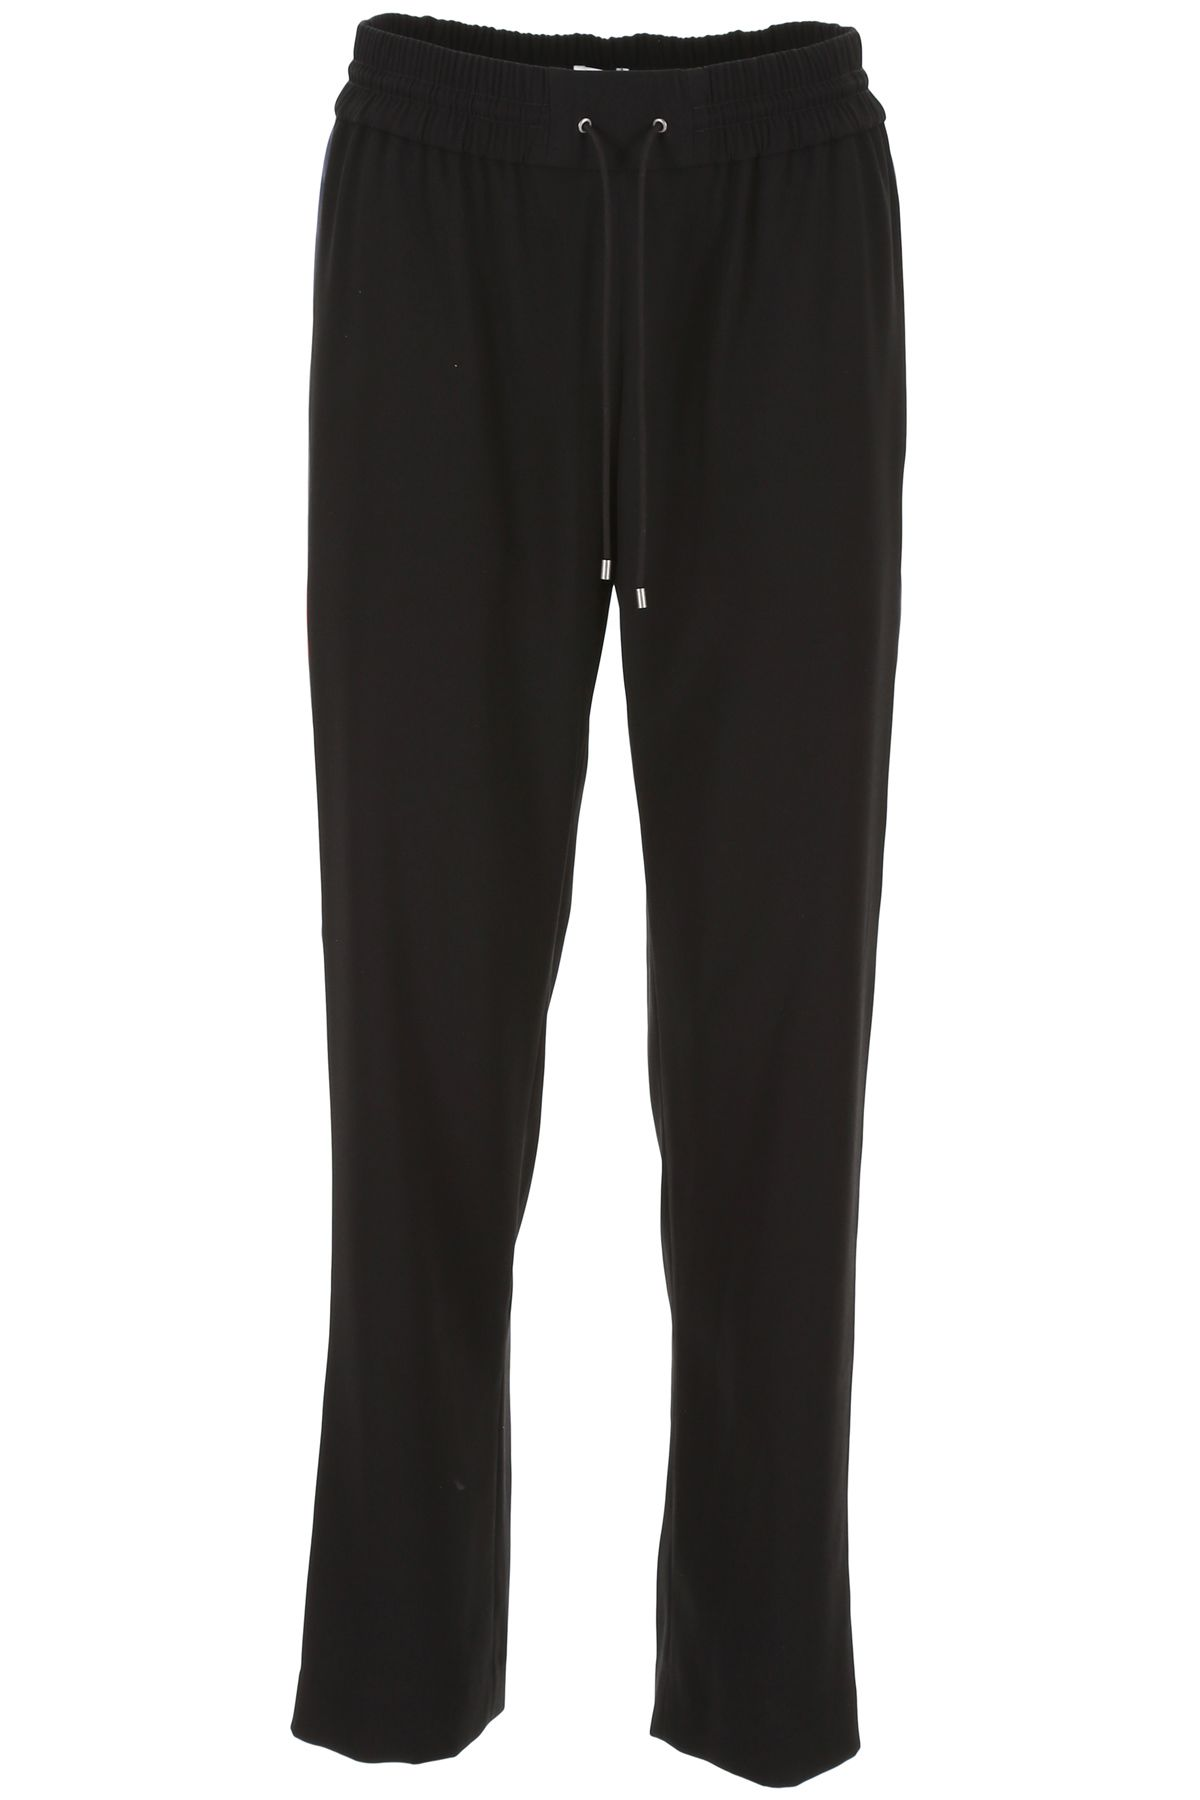 Kenzo Crepe Trousers With Band